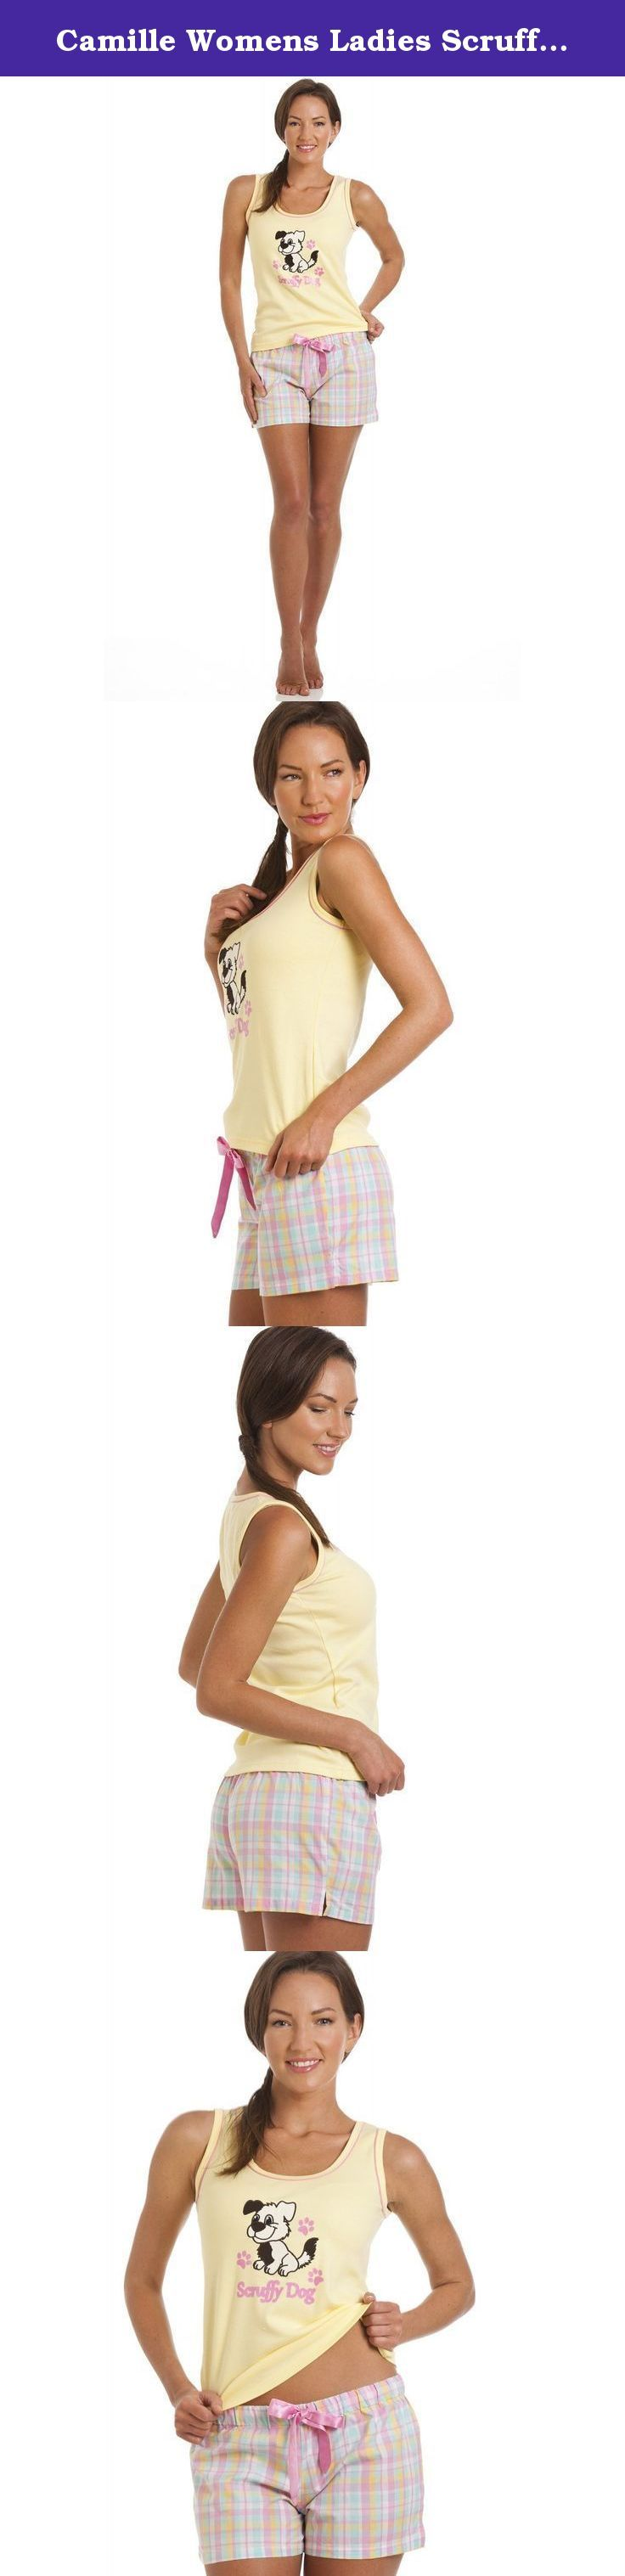 Camille Womens Ladies Scruffy Dog Print Short Pyjama Set 12/14 YELLOW. Scruffy Dog Slogan On A Yellow Short Sleeve Top. Short Multi Colour Check Bottoms With Ribbon Tie. Machine Washable. If you need any help with sizing please contact us through Amazon we will respond within 24 hours. All our orders are sent by Priority Air Mail. Usual delivery within 7-10 days.